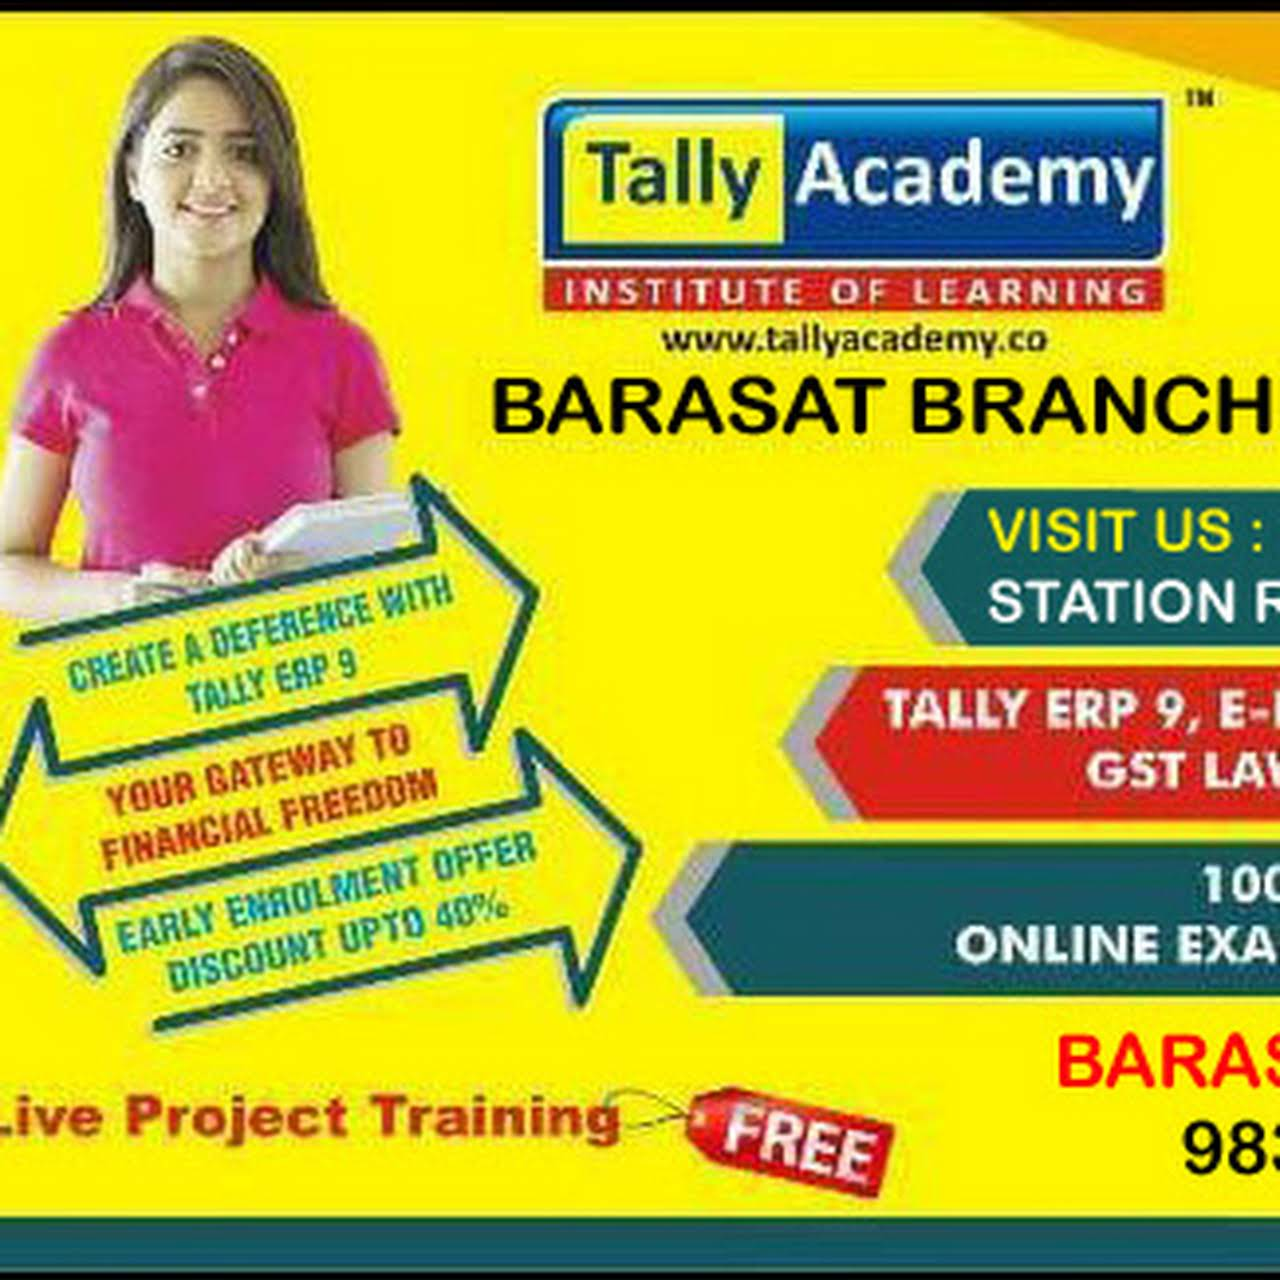 Tally Academy Barasat - is the Orgnisation Authorised to